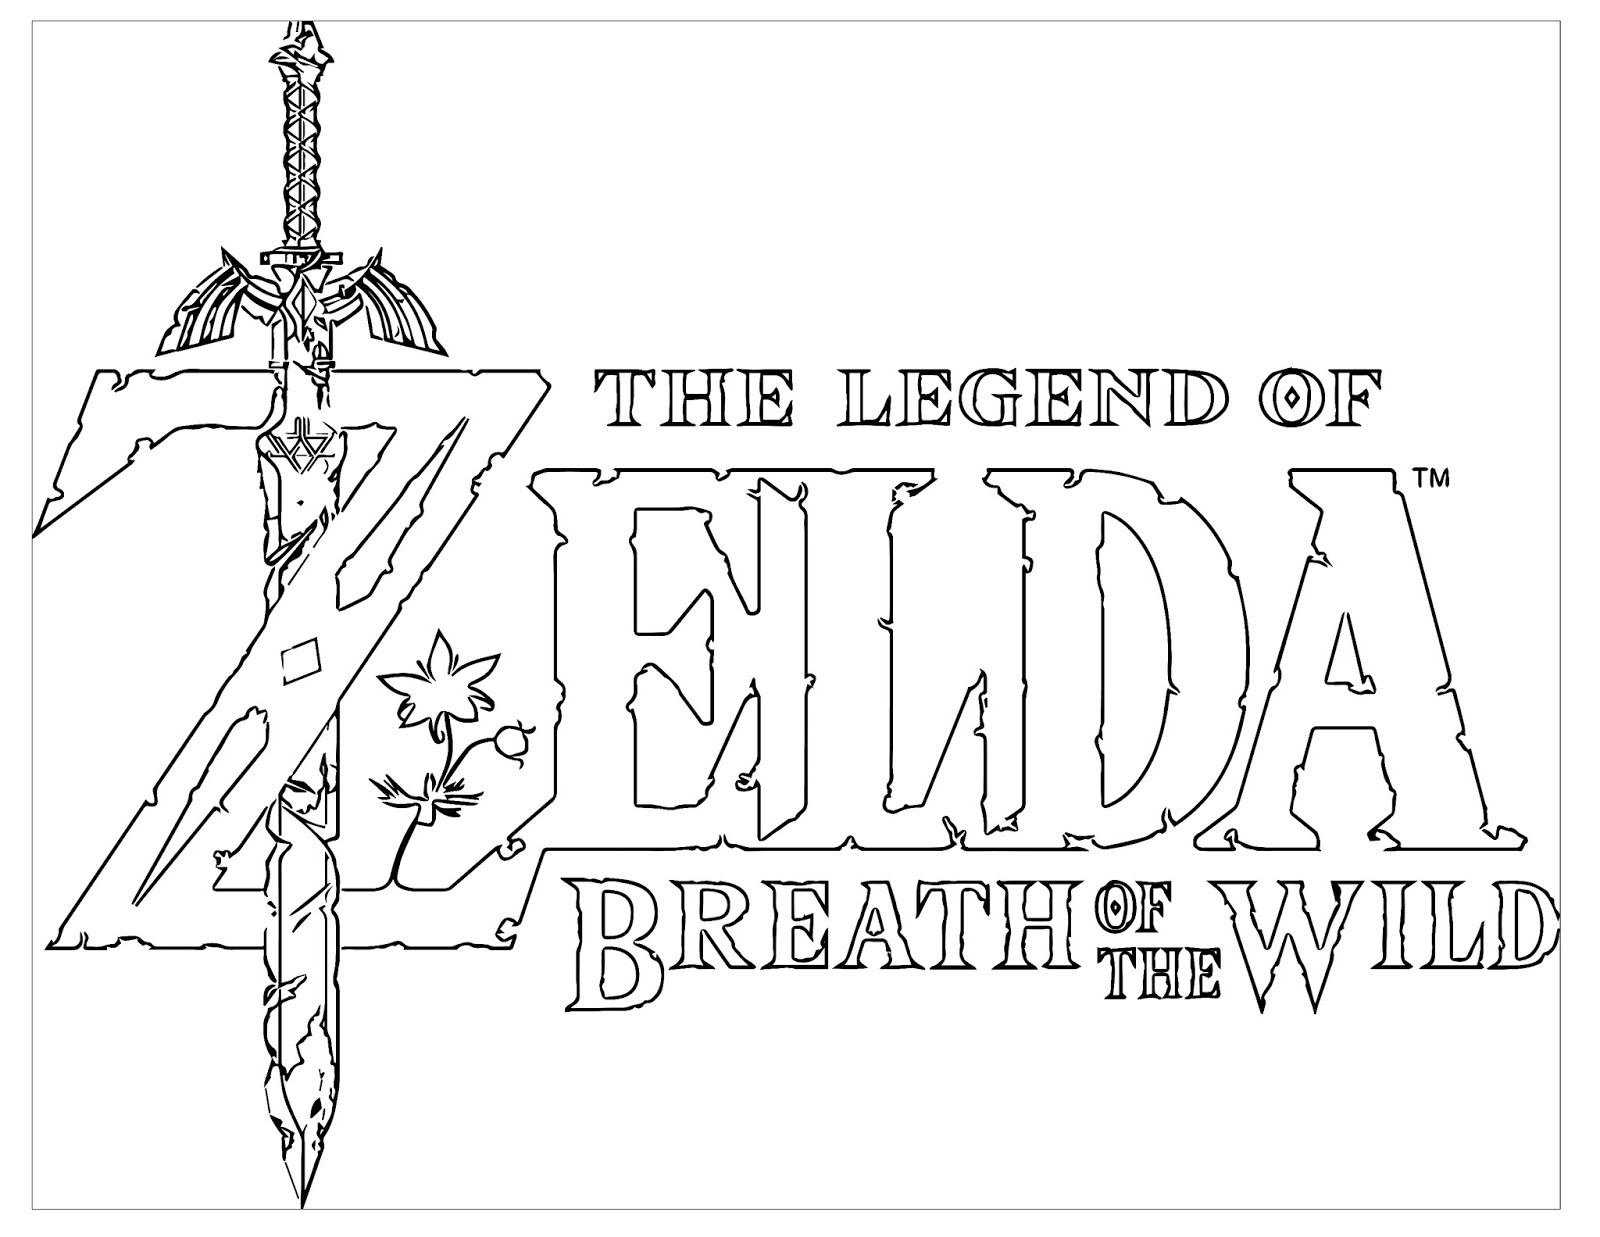 breath of the wild coloring pages My Cup Overflows: The Legend of Zelda: Breath of the Wild breath of the wild coloring pages